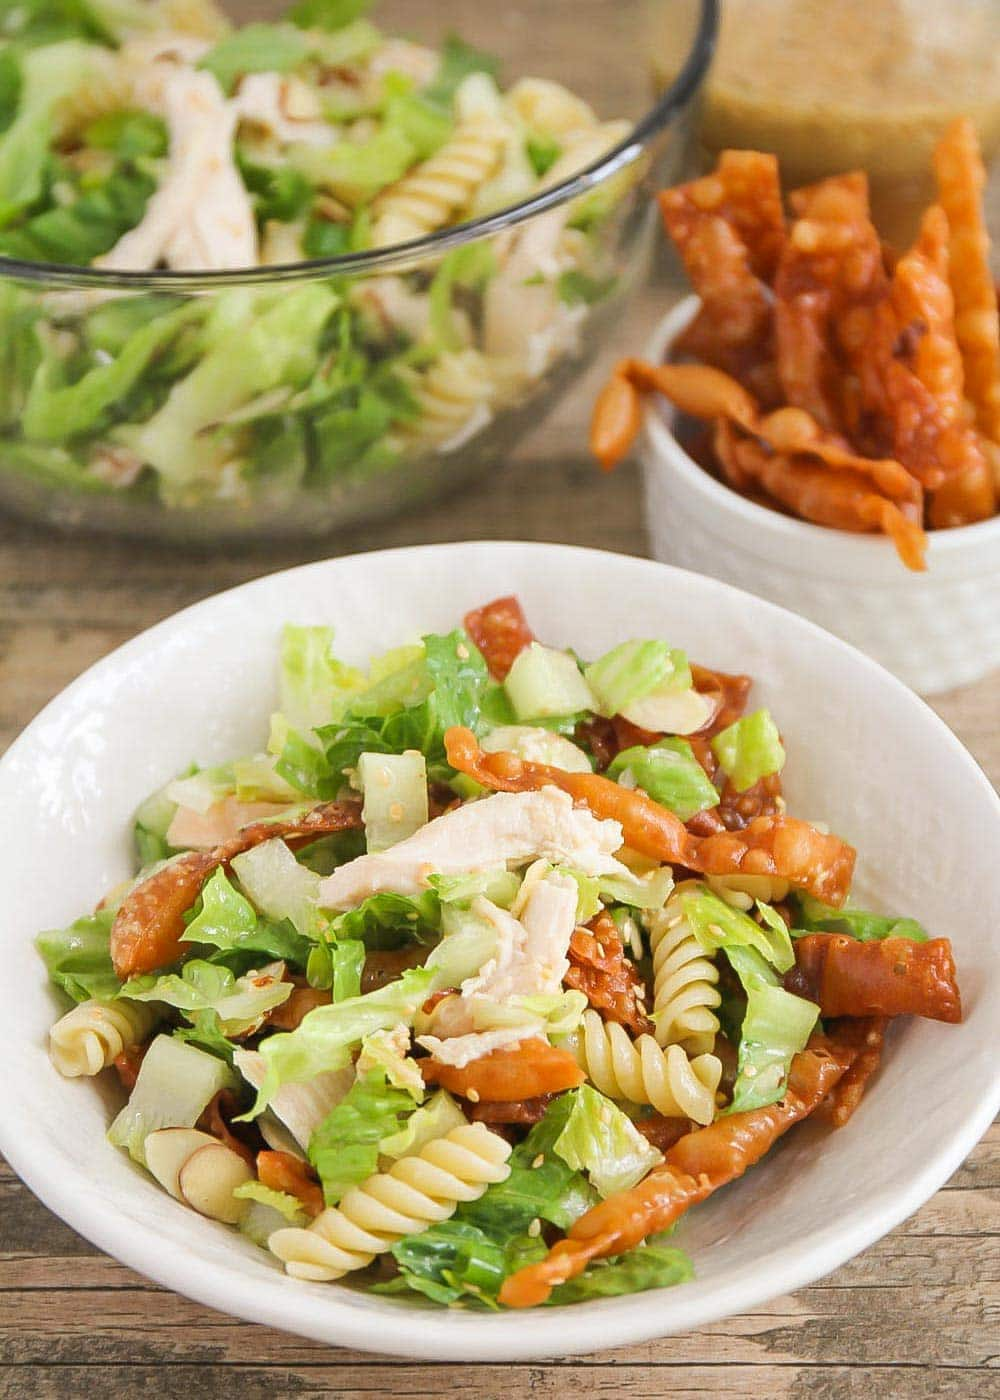 Chinese chicken pasta salad in a white bowl